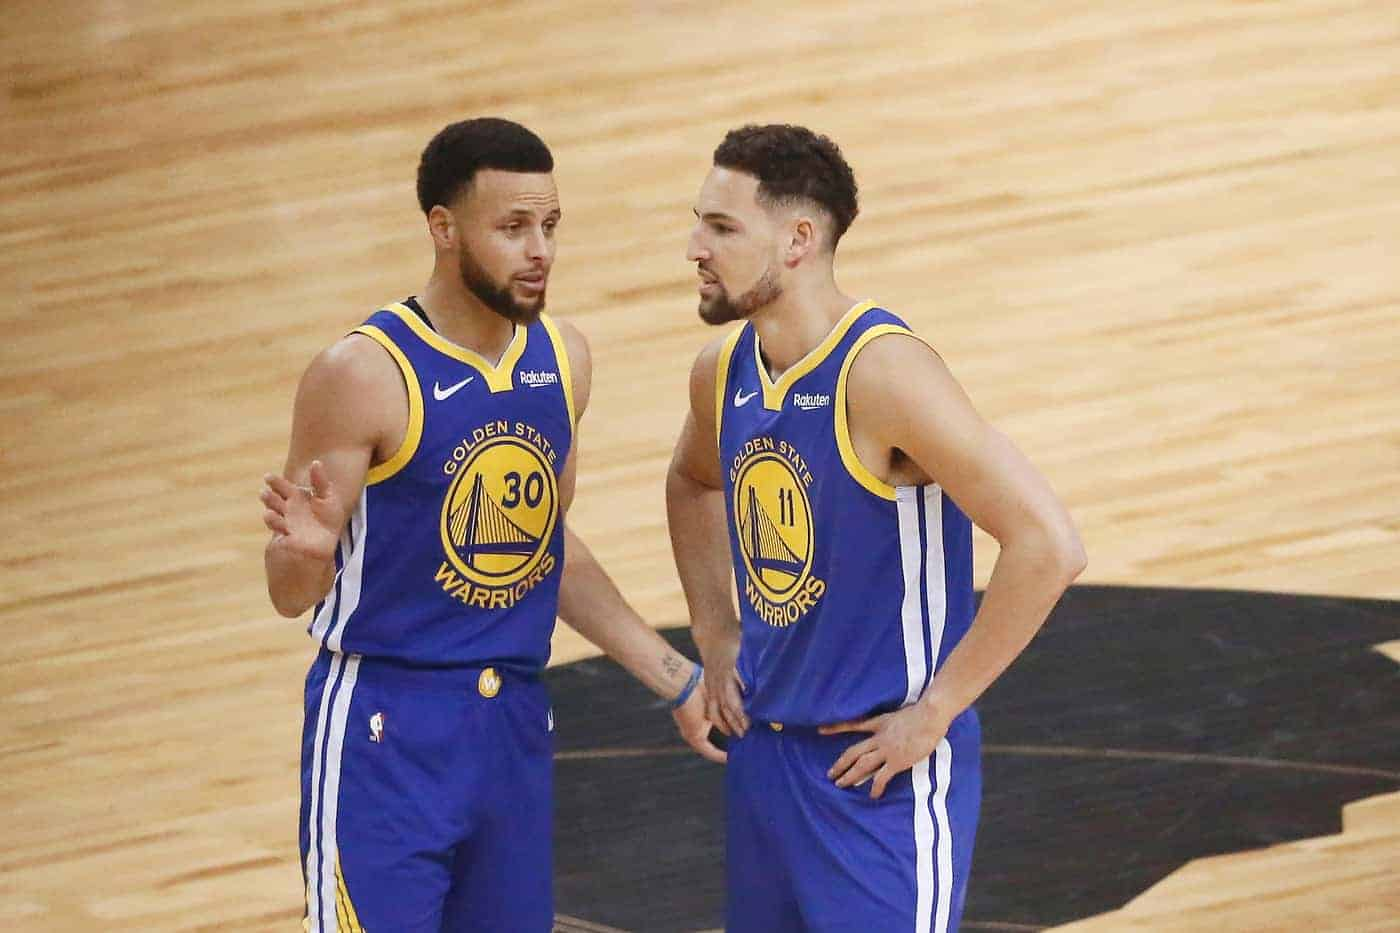 NBA Stephen Curry Klay Thompson Golden State Warriors H.O.R.S.E. NBA